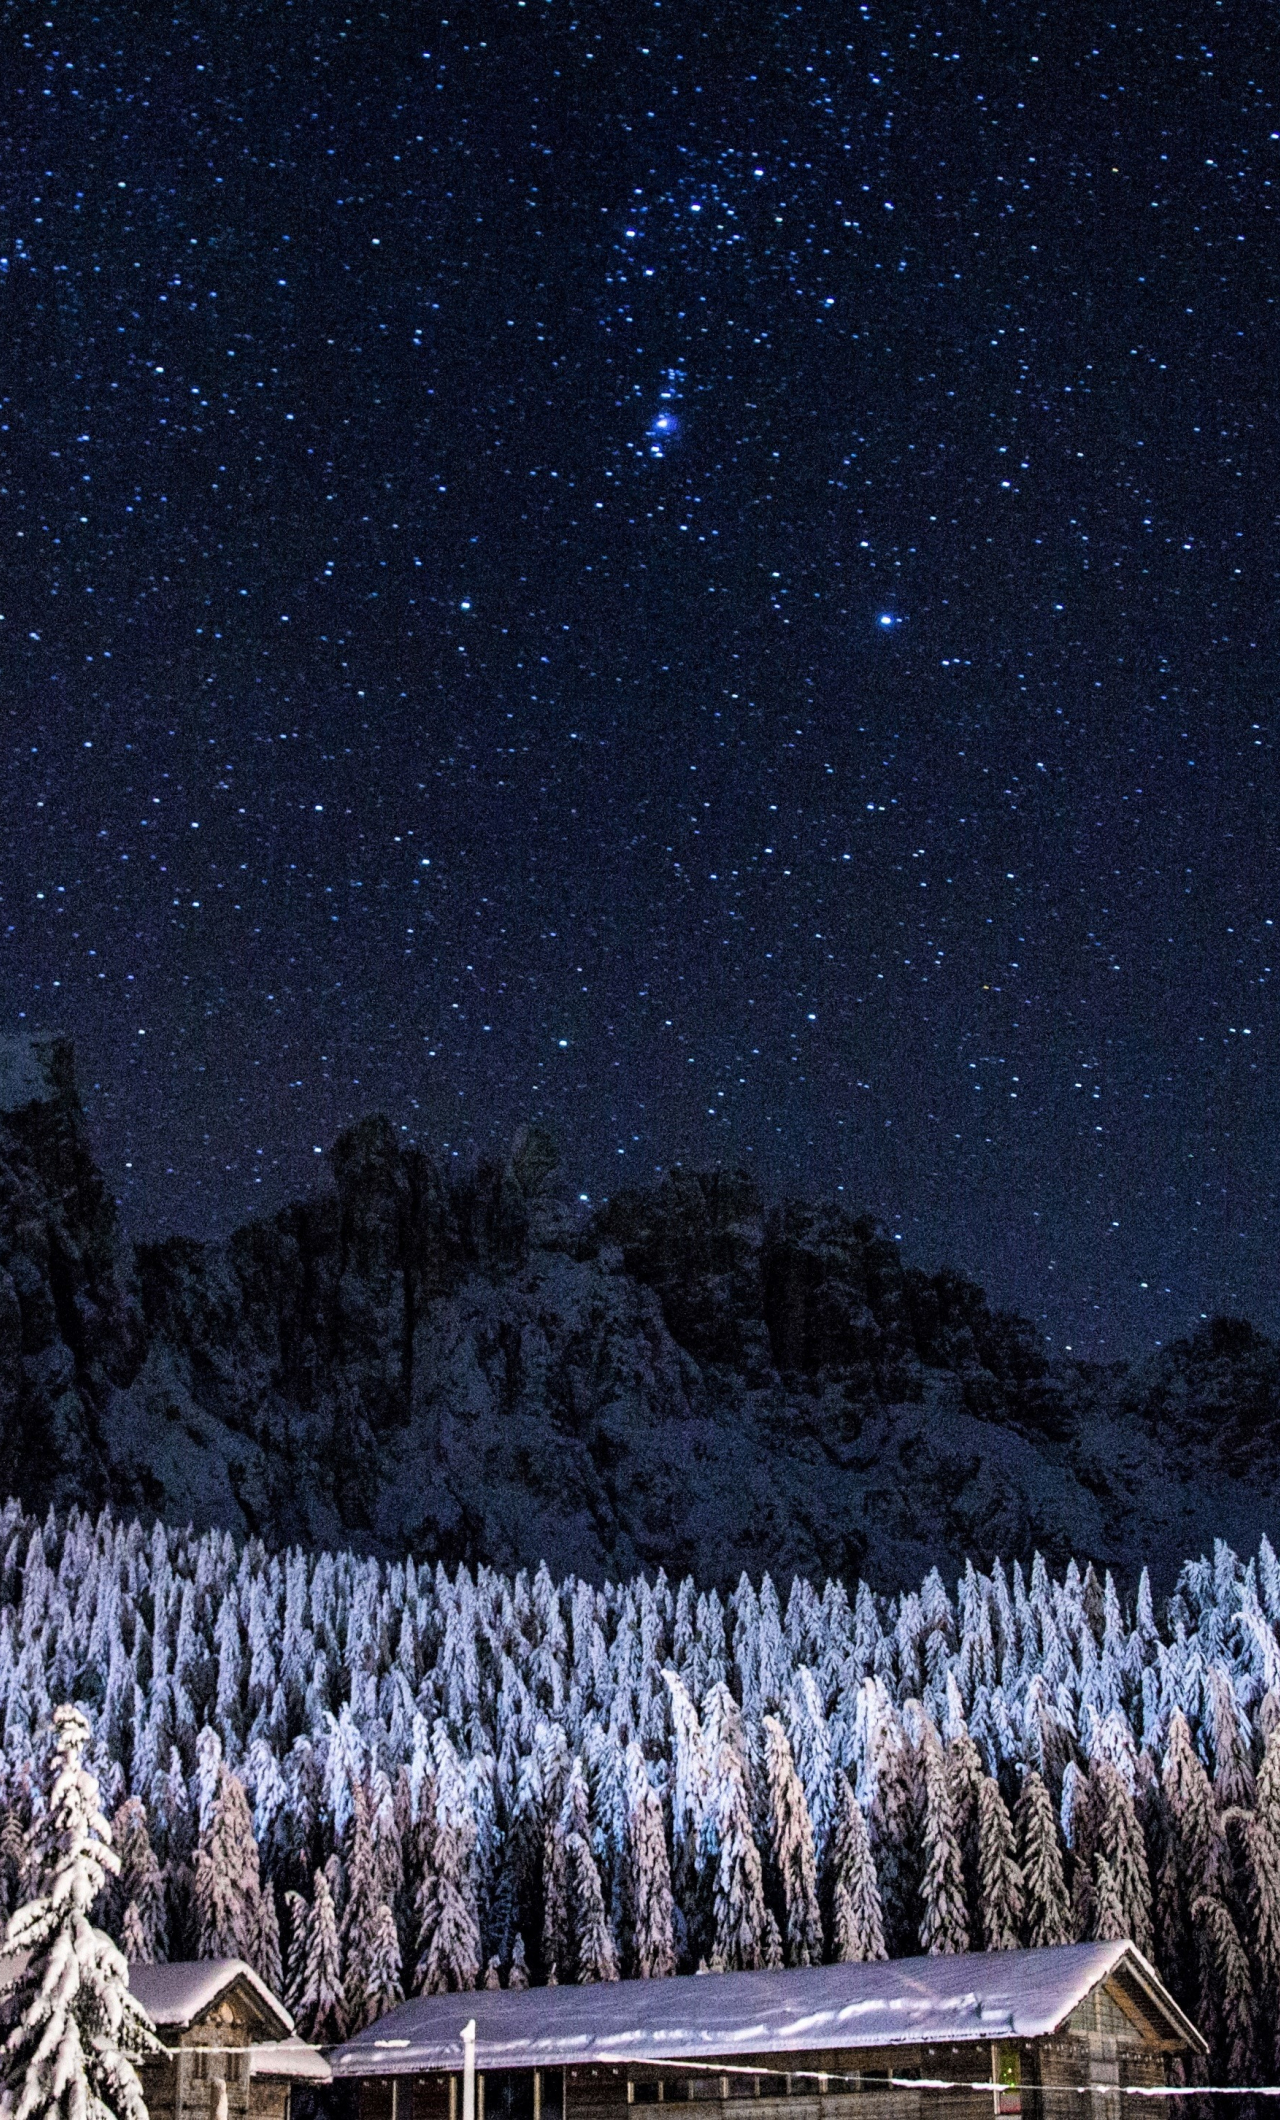 Download 1280x2120 Wallpaper Trees Forest Starry Night